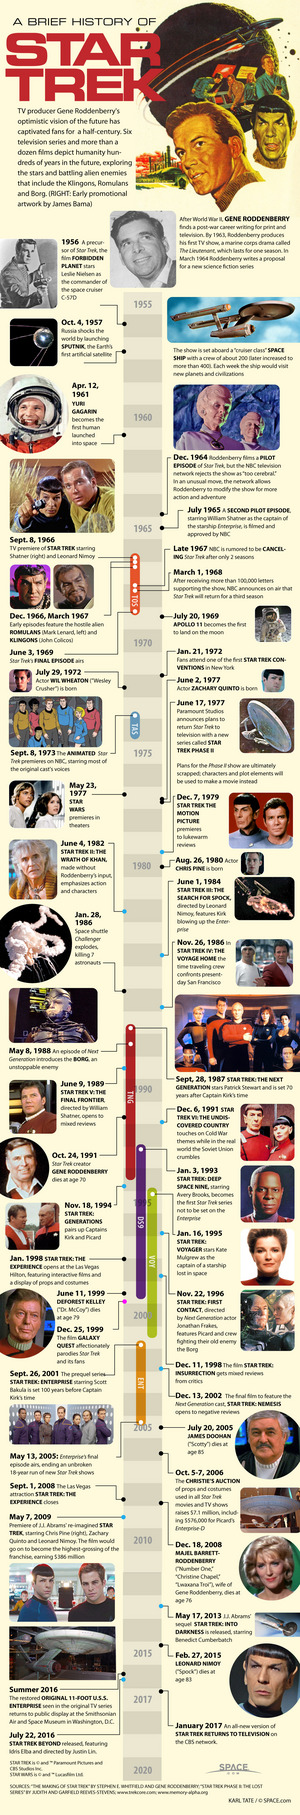 "The legacy of Star Trek is more than four decades old and still going strong. <a href=""http://www.space.com/12858-star-trek-timeline-science-fiction-infographic.html"">See the evolution of Star Trek in this SPACE.com infographic</a>."